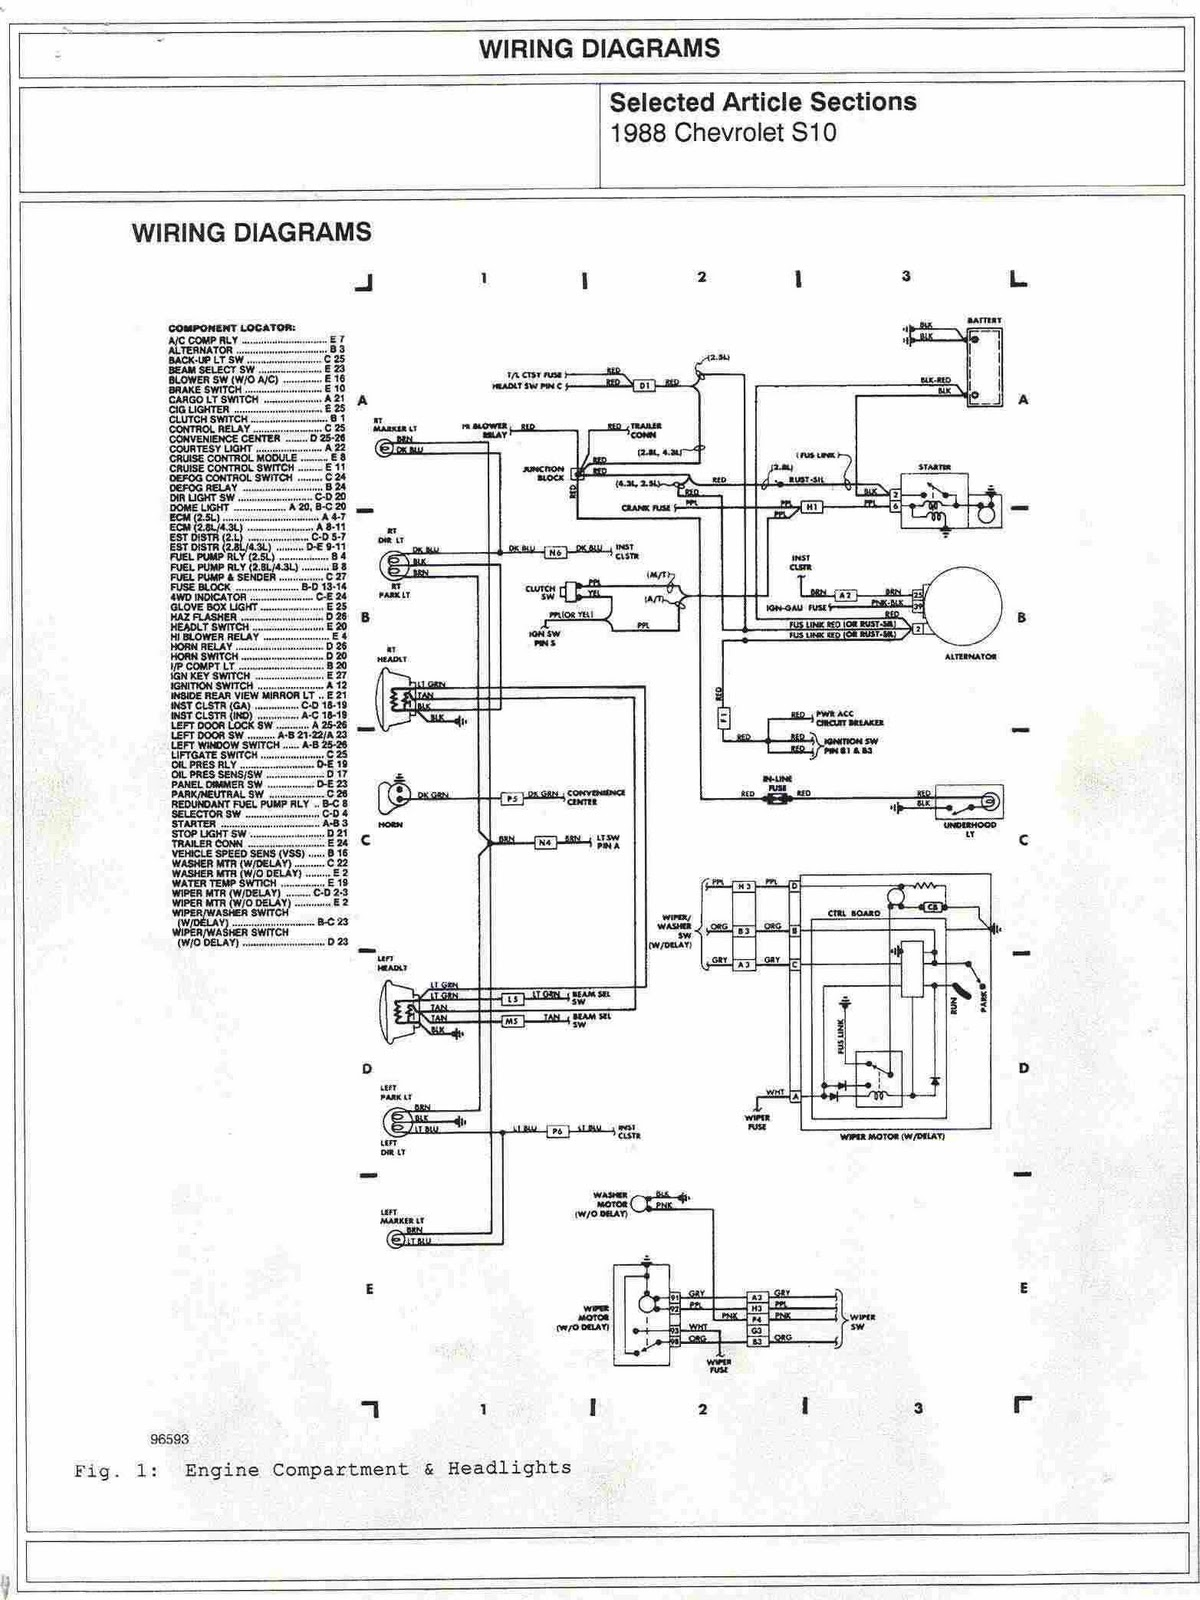 schematics u2022 wiring 1988 chevrolet s10 engine compartment [ 1200 x 1600 Pixel ]